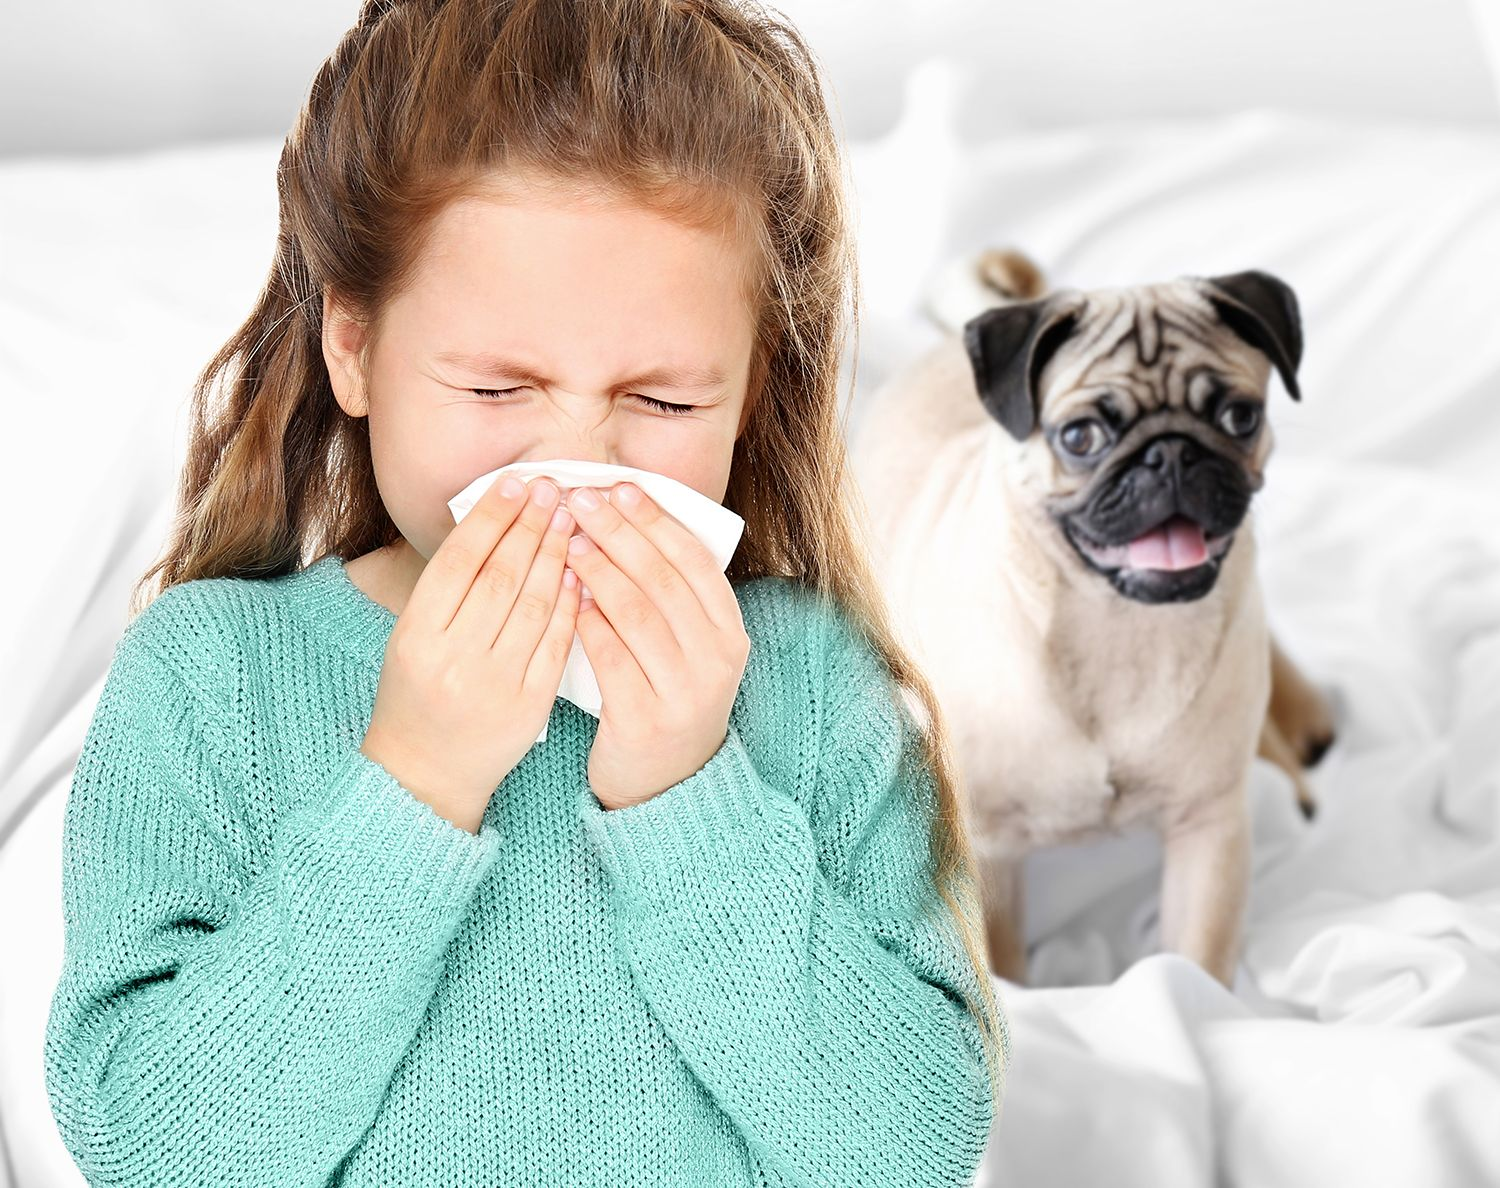 Pin on Allergy Symptoms